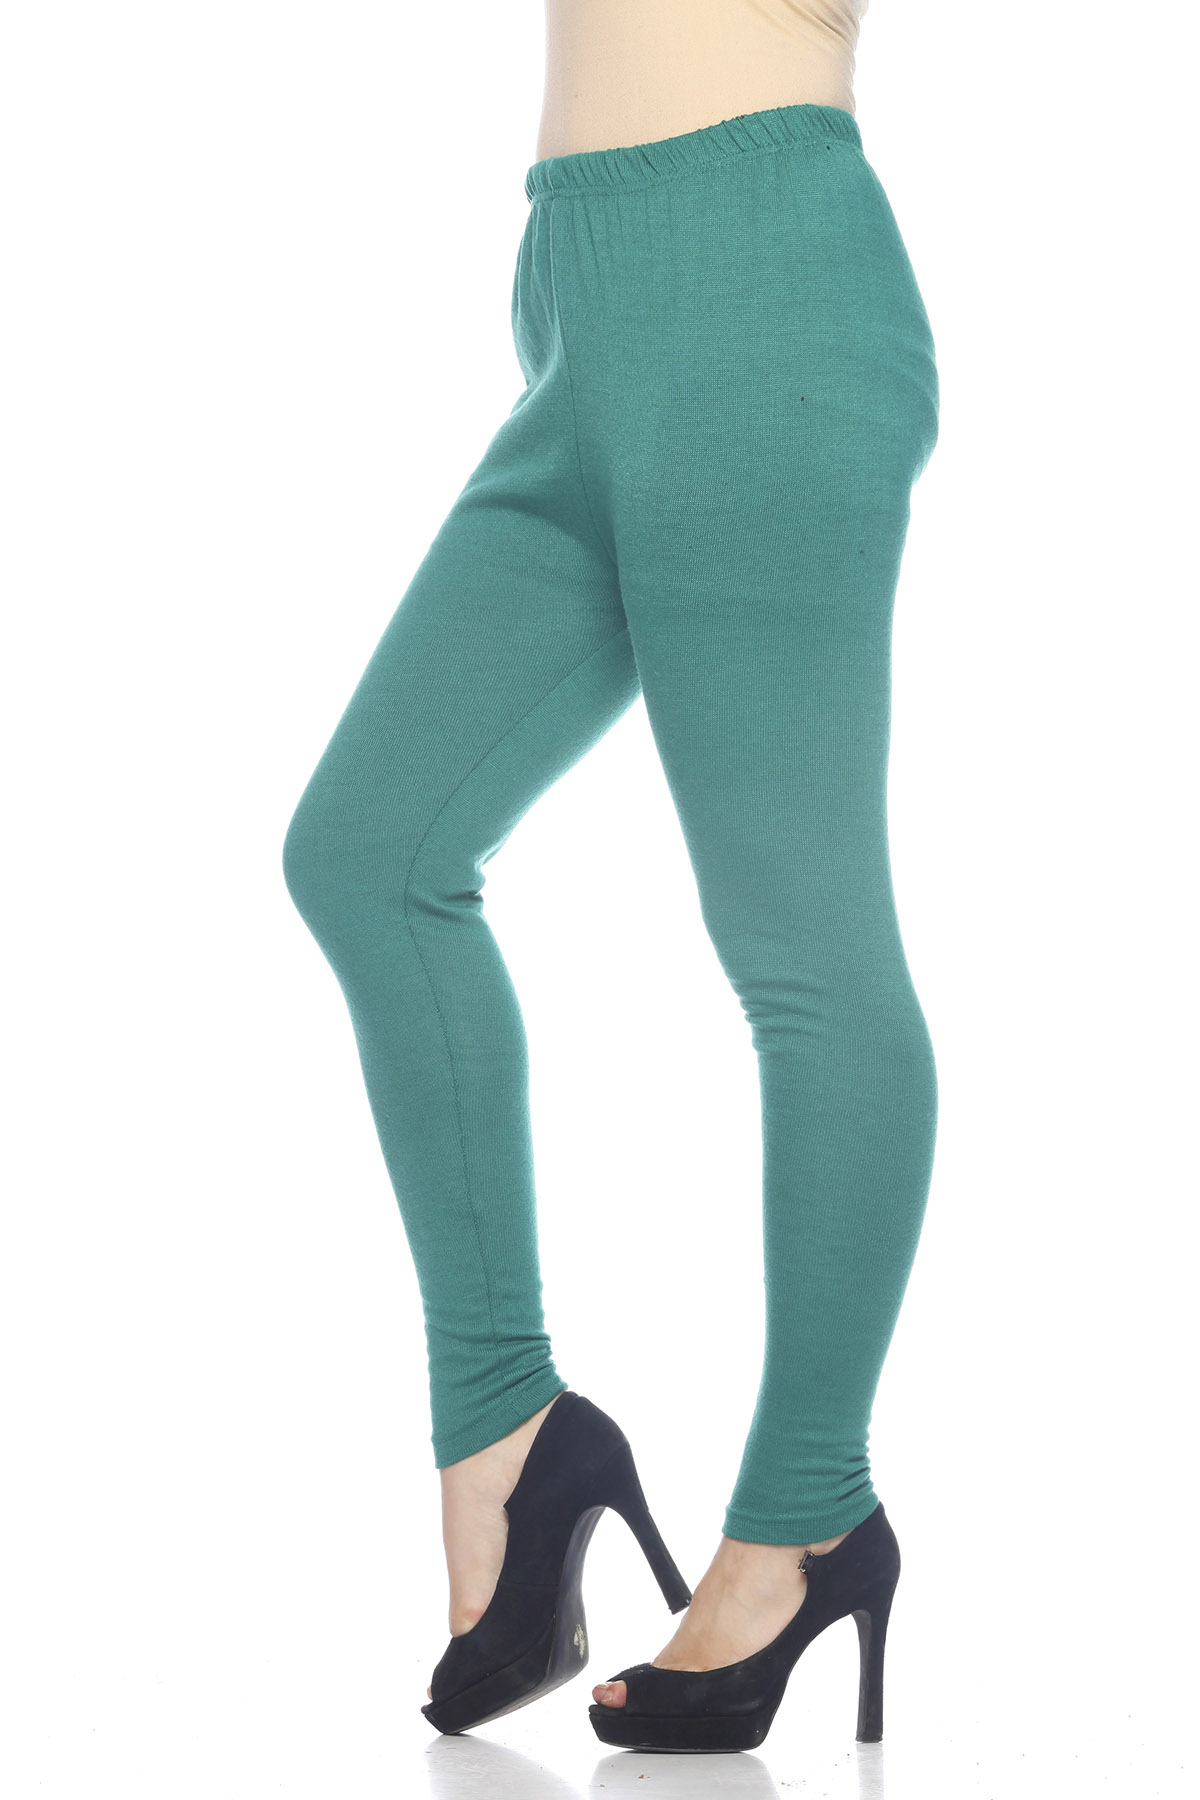 Green Attractive Woolen Legging for Women